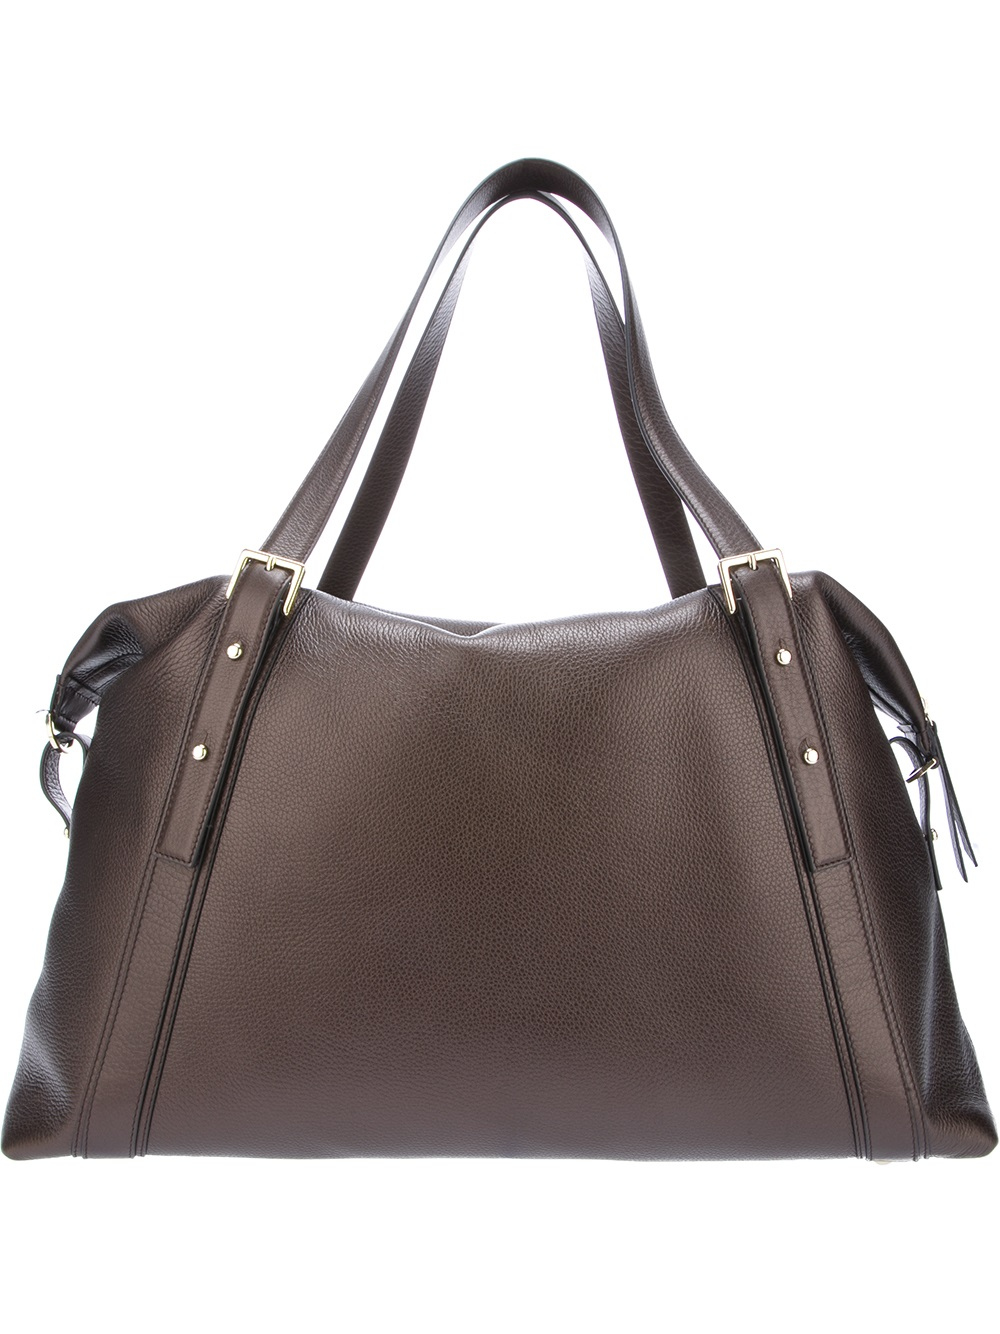 christina-christersdotter-brown-savanna-bag-product-1-11442146-909634305.jpg